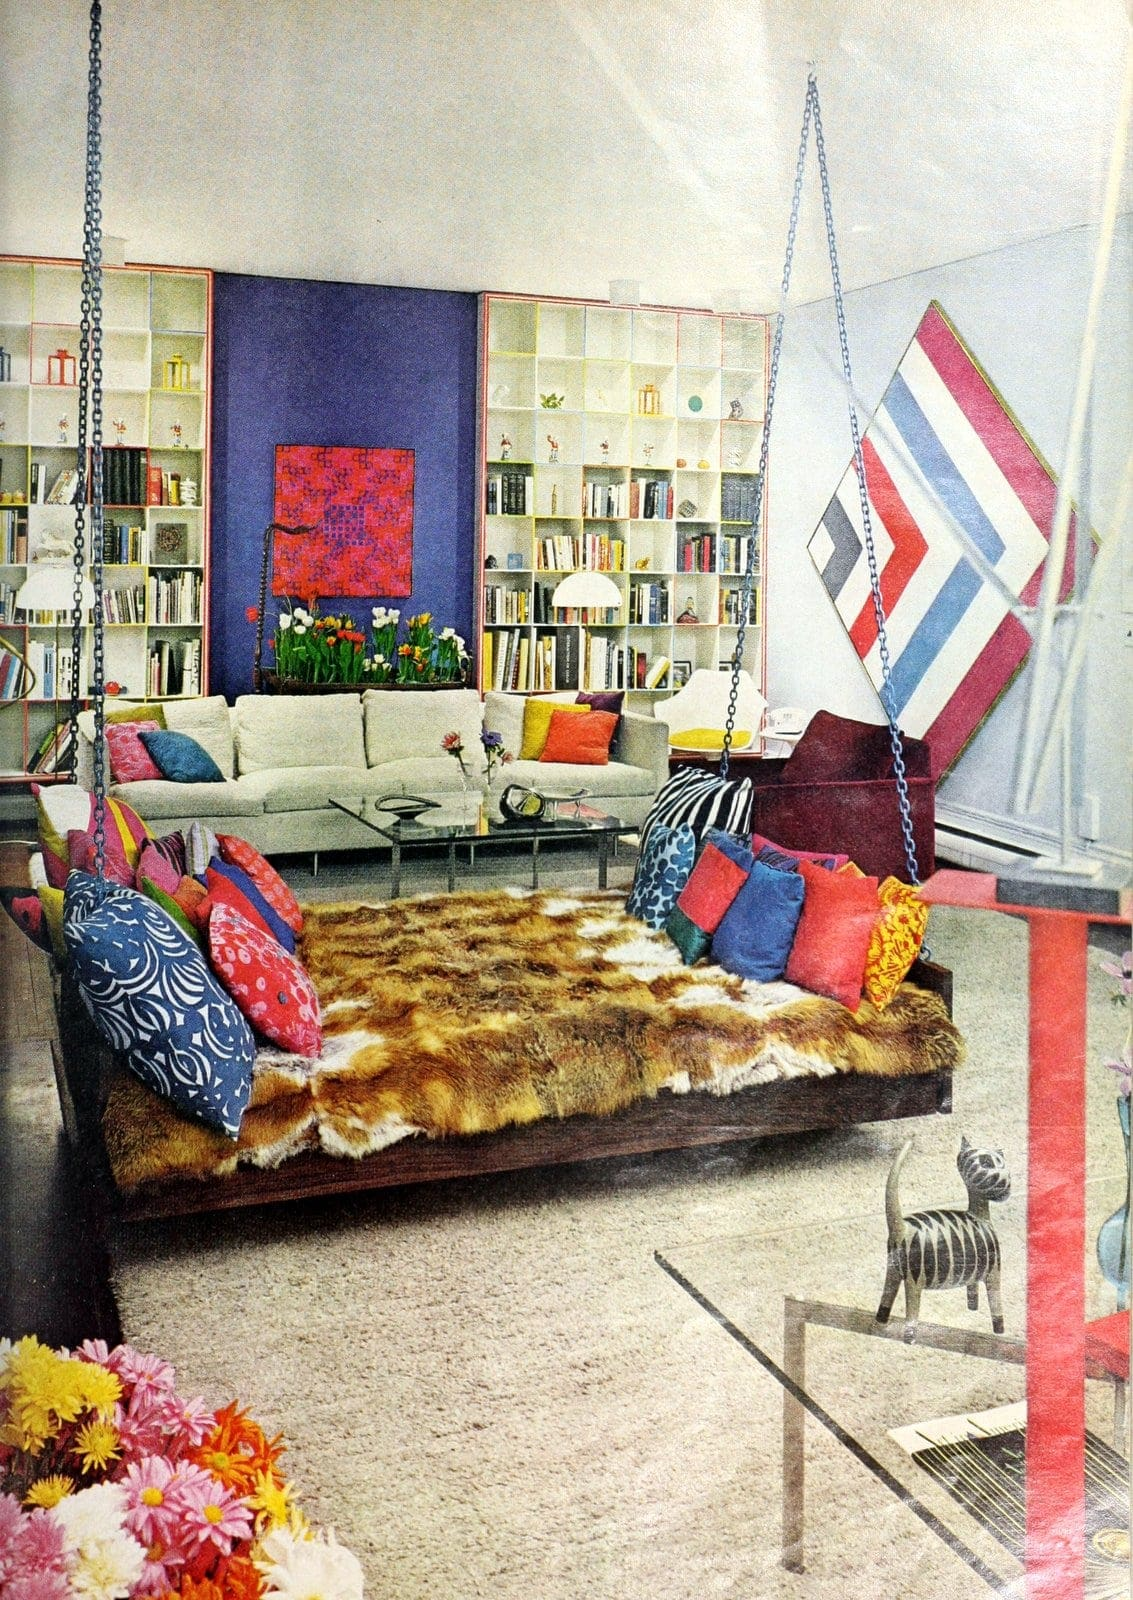 Vintage home decor from 1968 - Swinging sofa and bookshelves